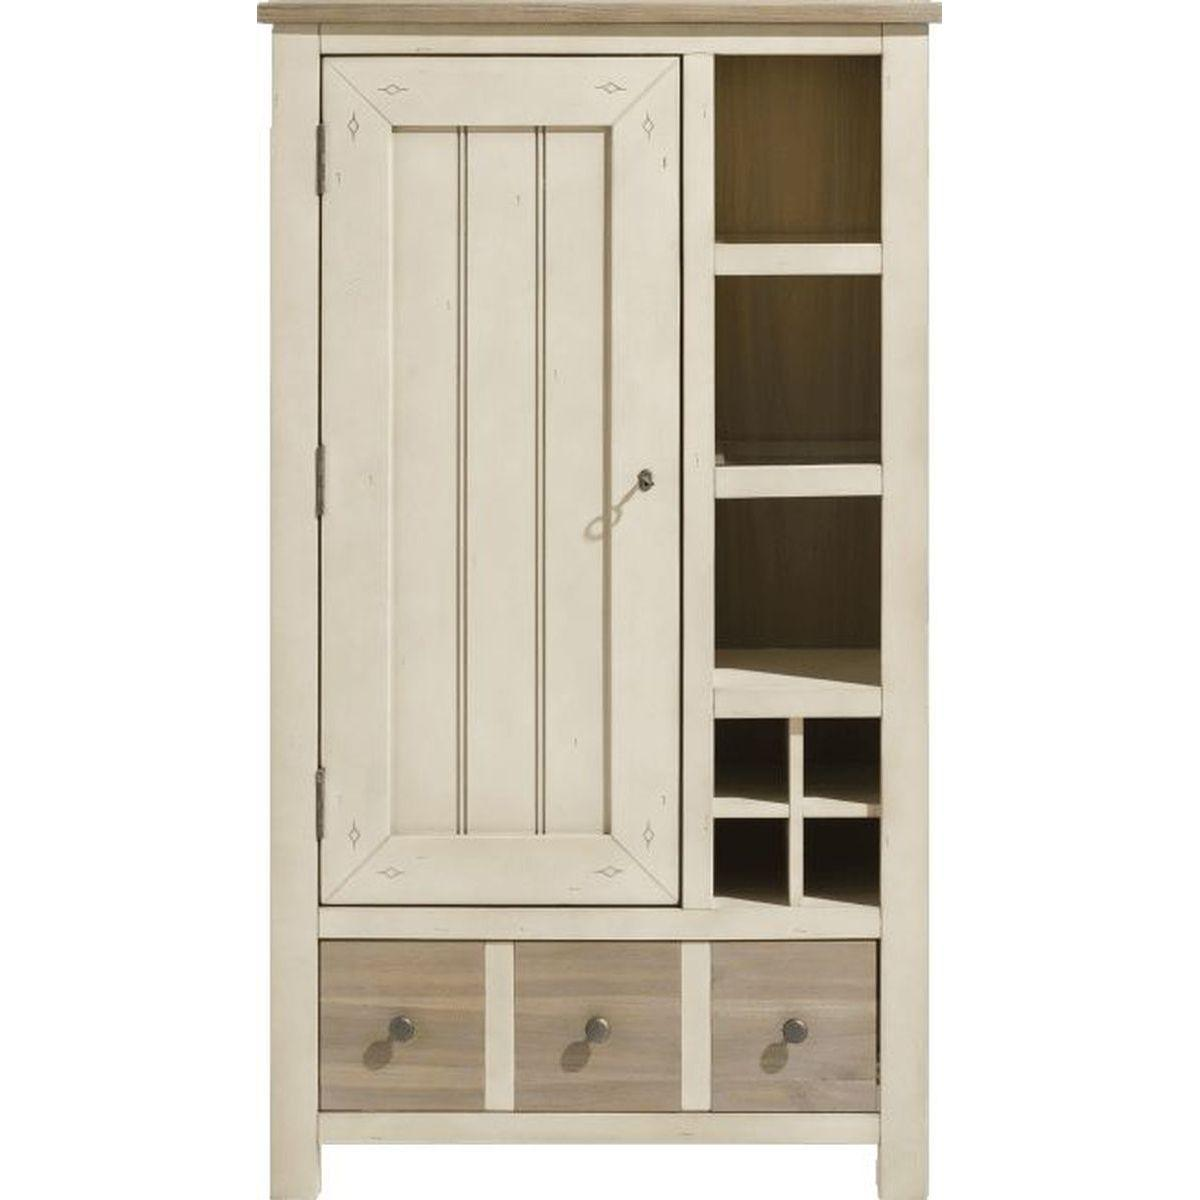 LE PORT by Henders & Hazel Armoire french white